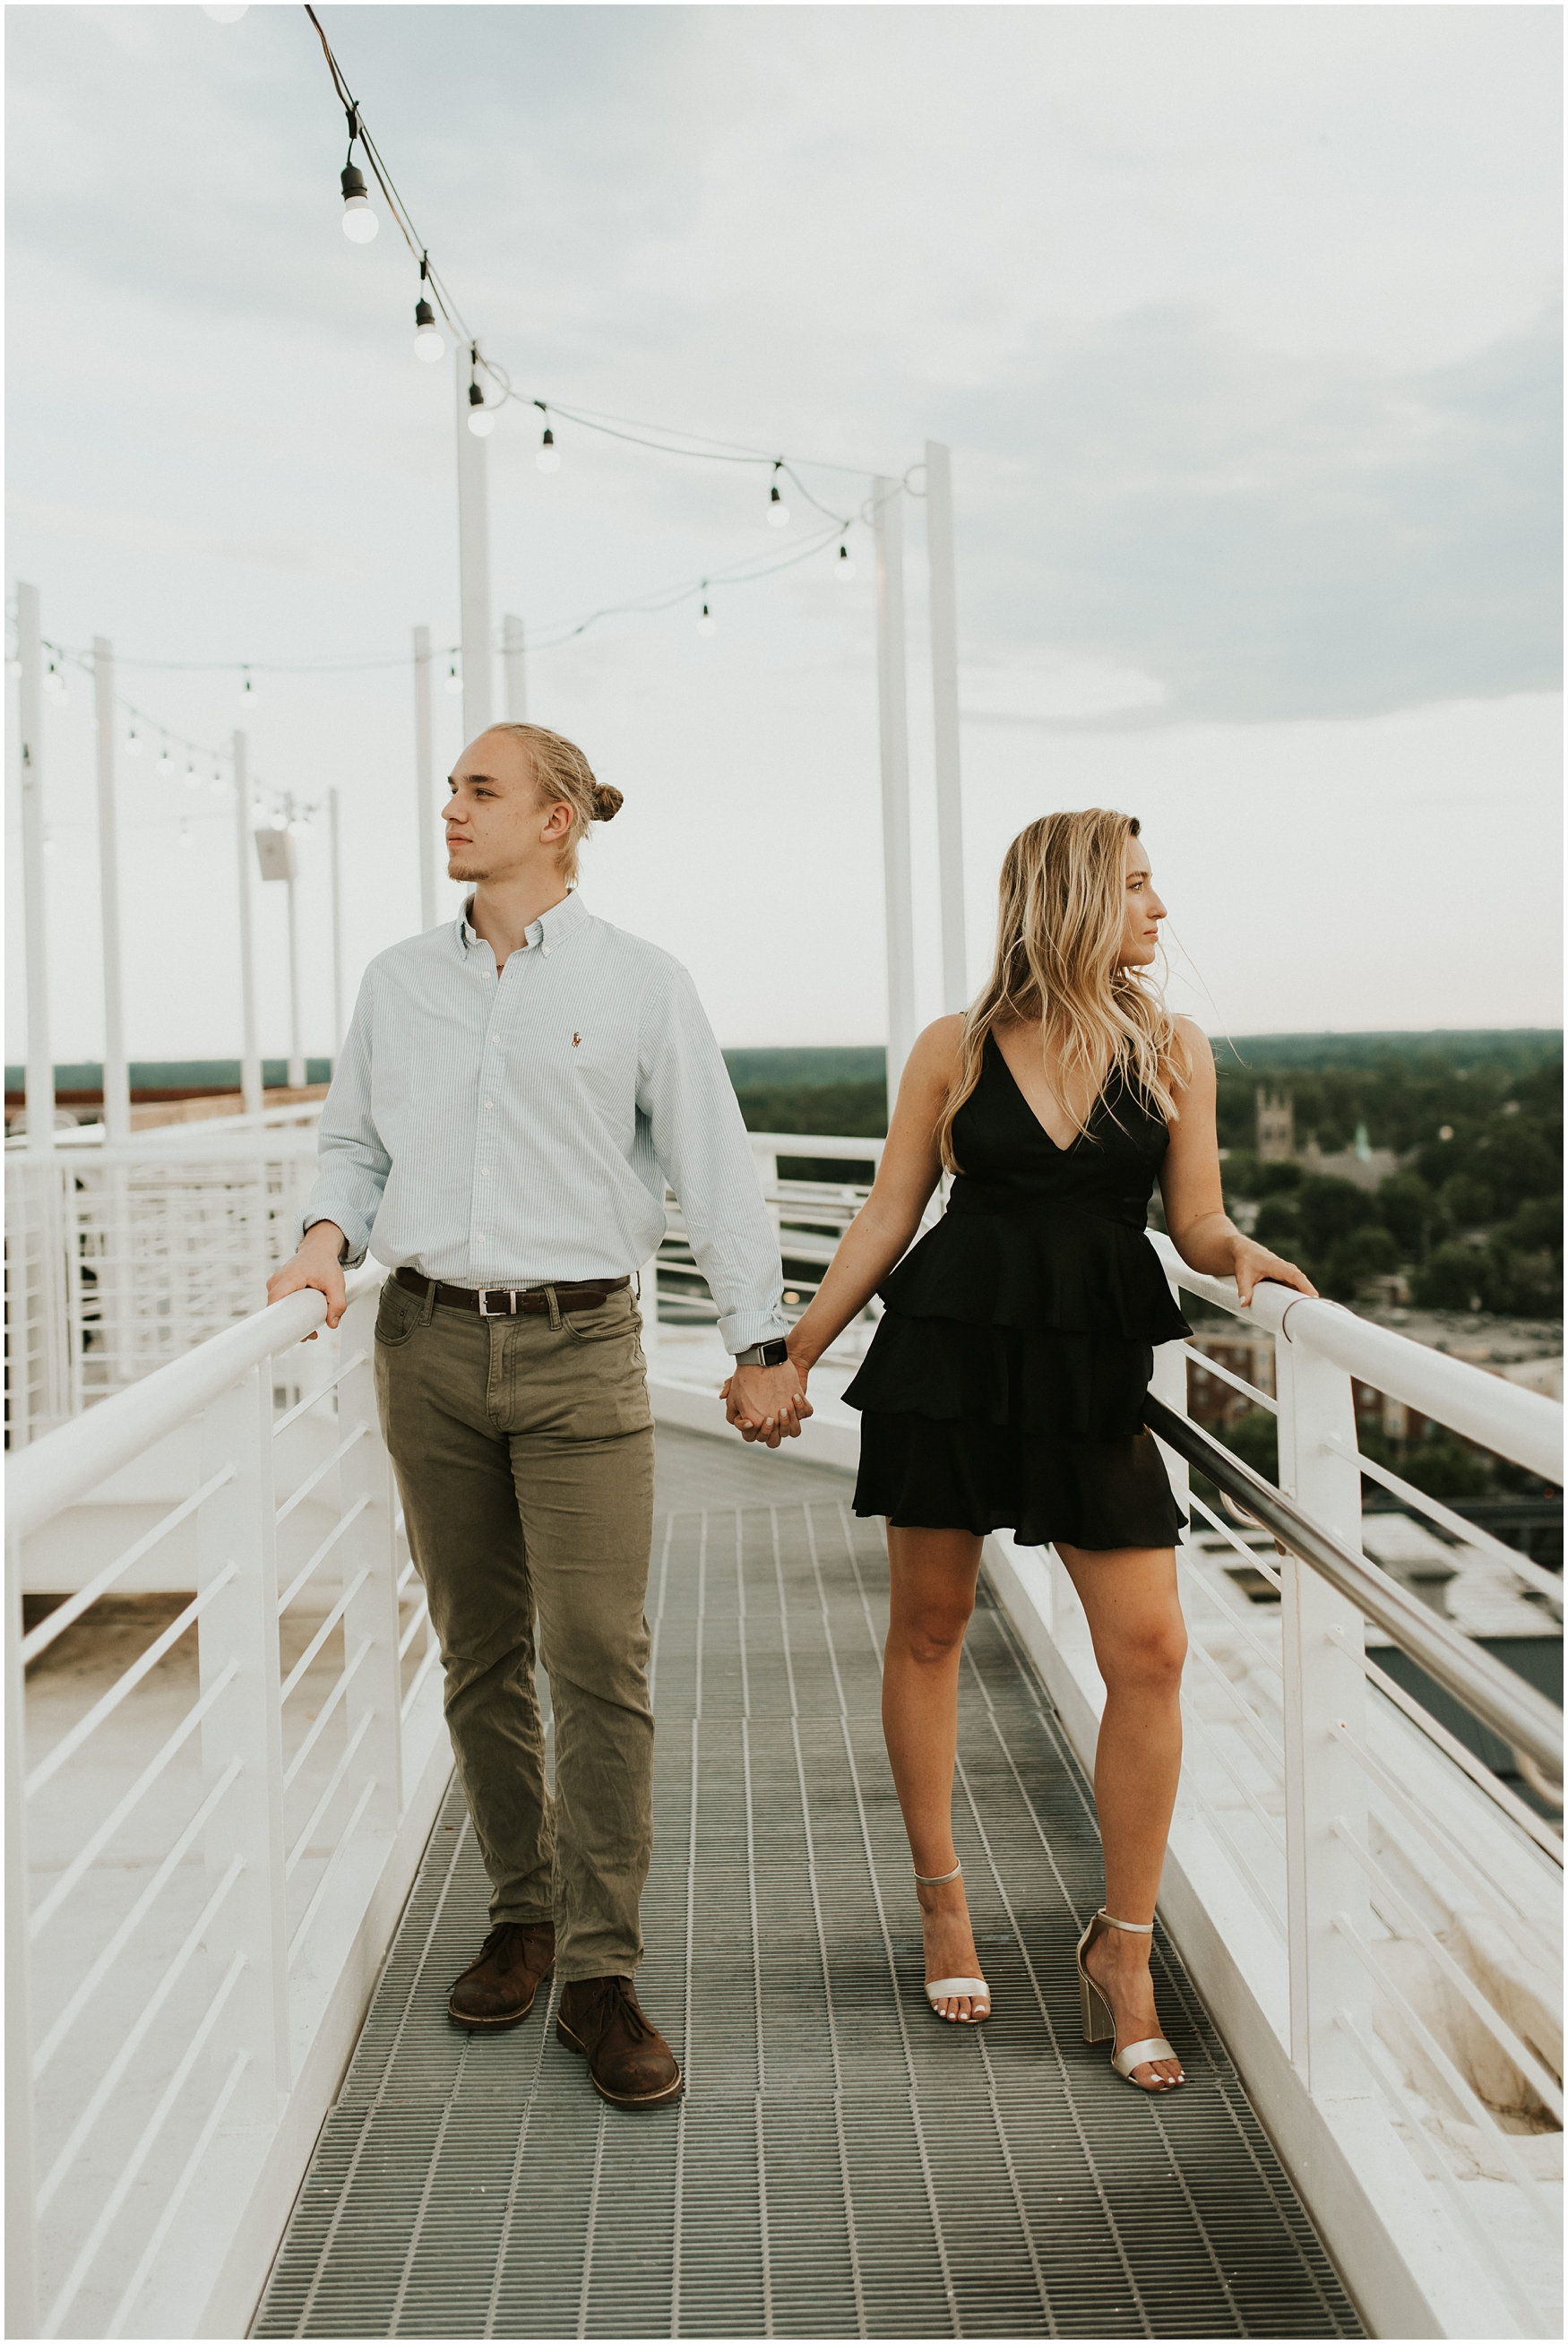 Hannah_Baldwin_Photography_RoofTop_Richmond_Virginia_Couples_Session_The_Graduate_RVA_0235.jpg